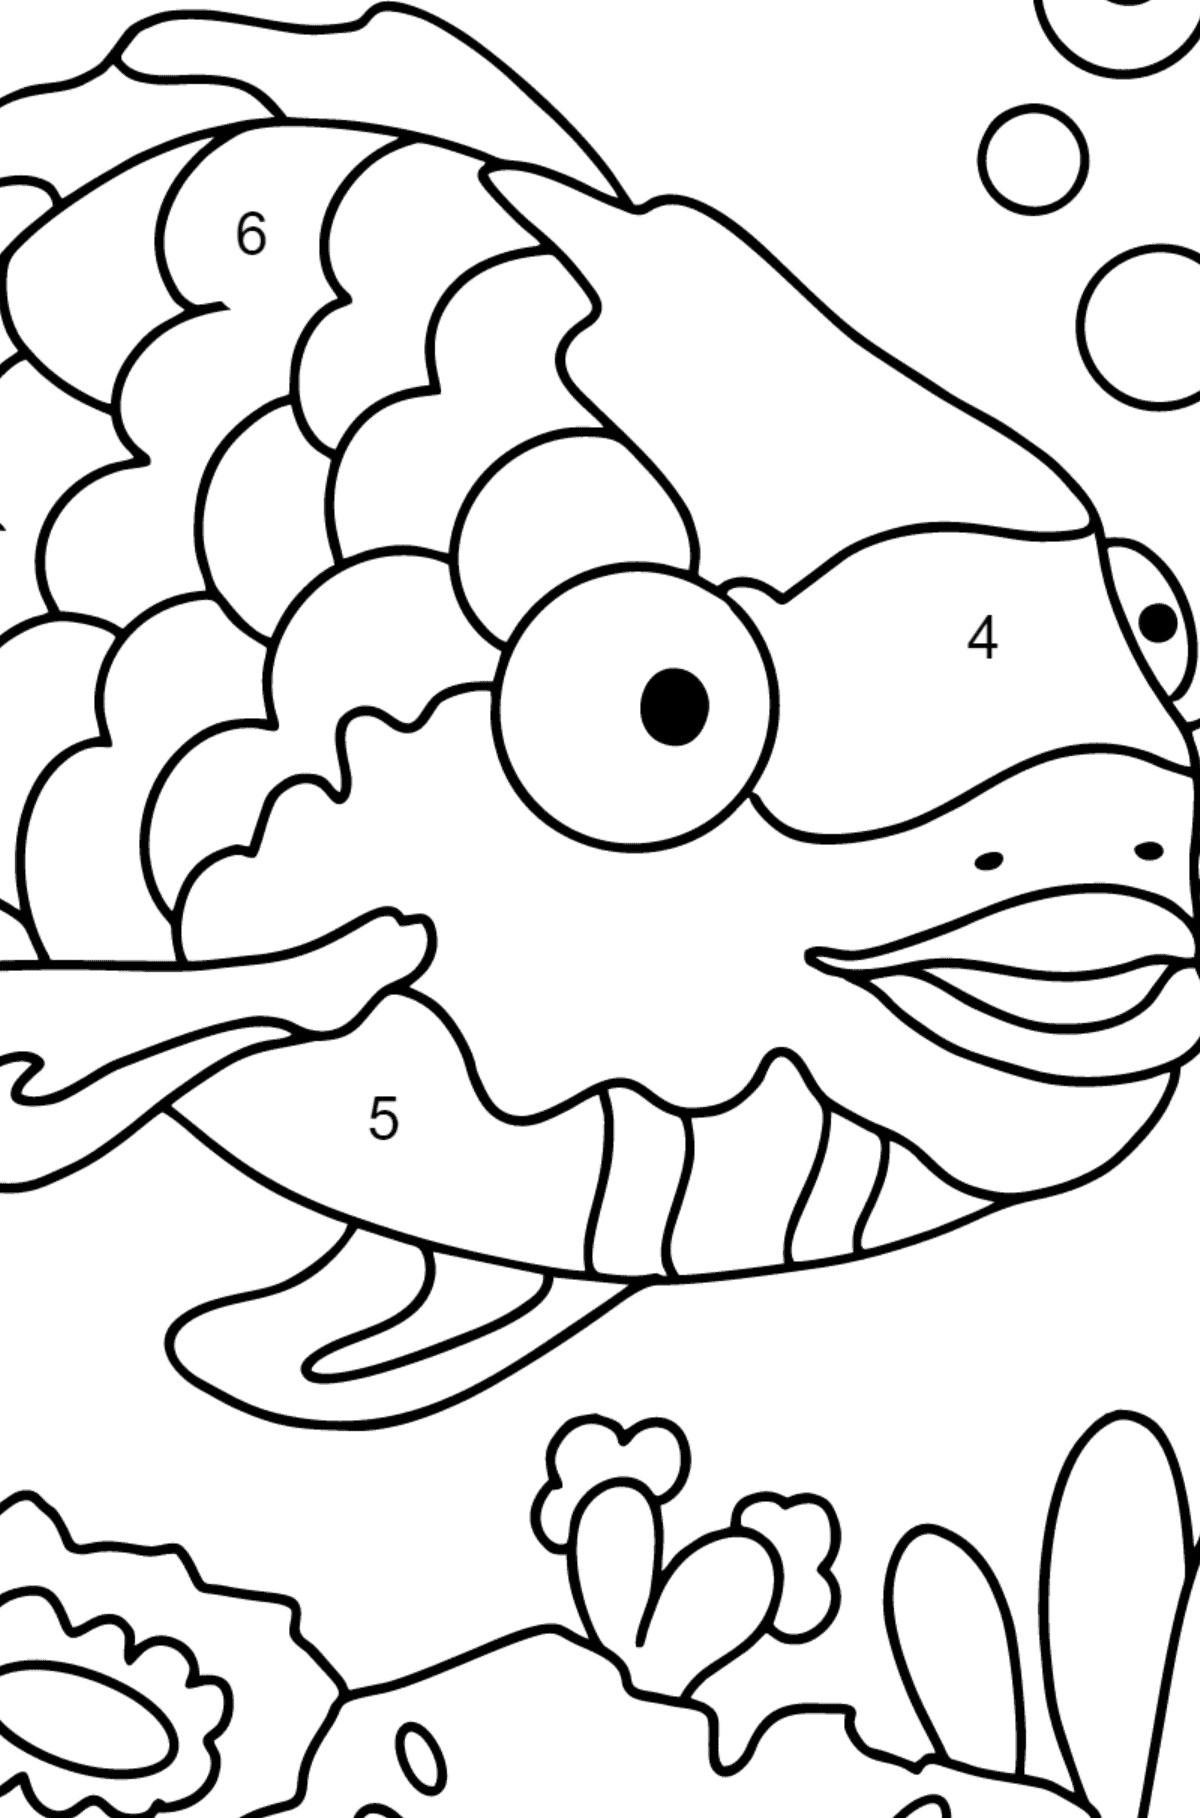 Coloring Page - A Fish with Multicolored Scales - Coloring by Numbers for Children